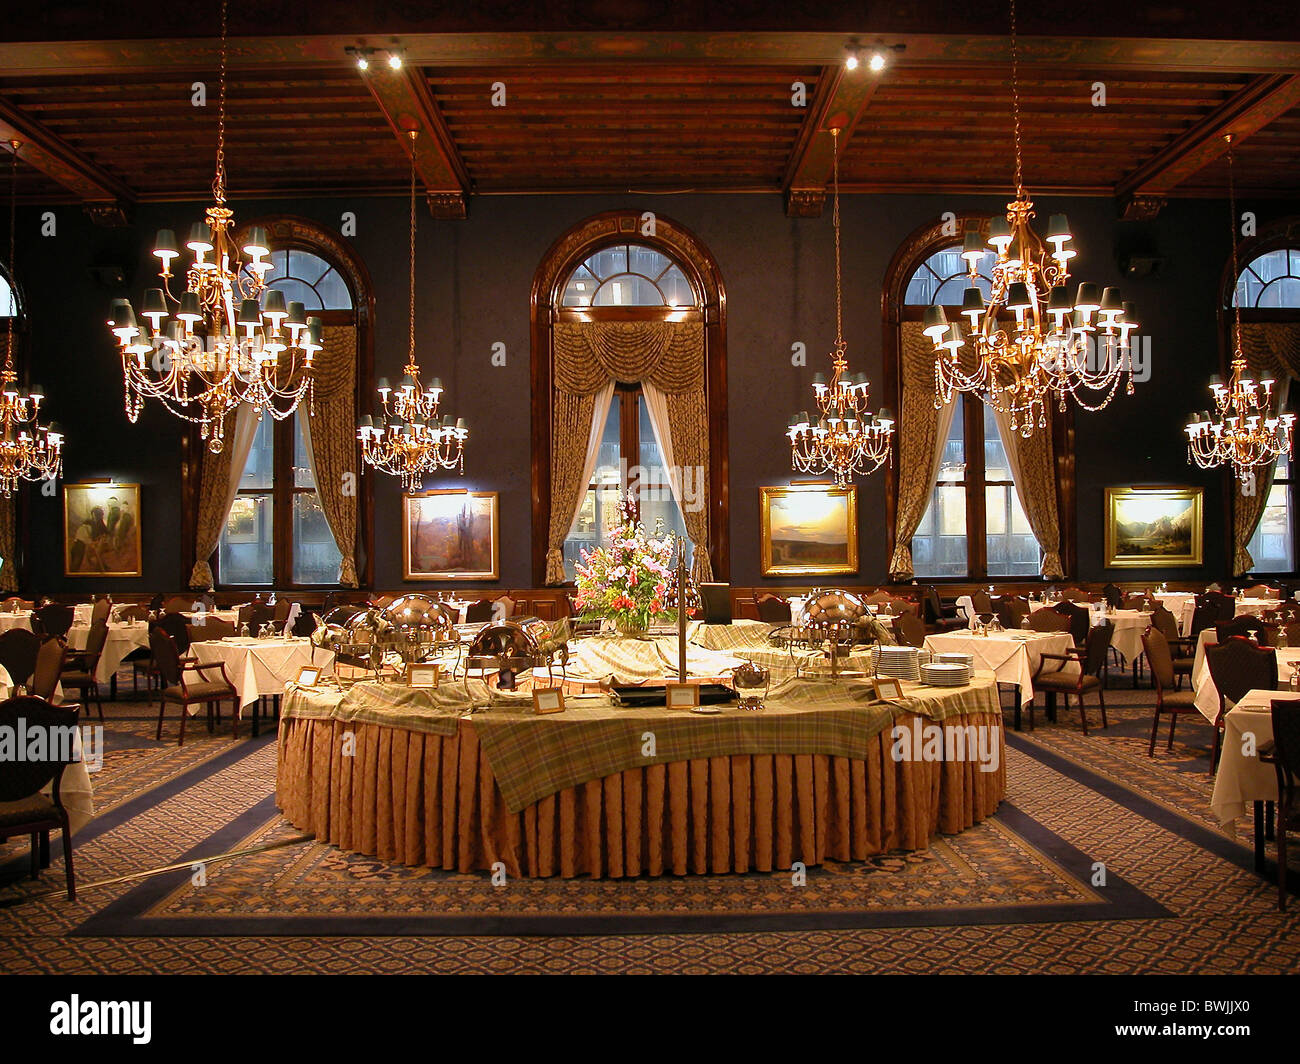 restaurant inside precious luxury dining room hall catering main stock photo restaurant inside precious luxury dining room hall catering main dining room union league club of chicago chi